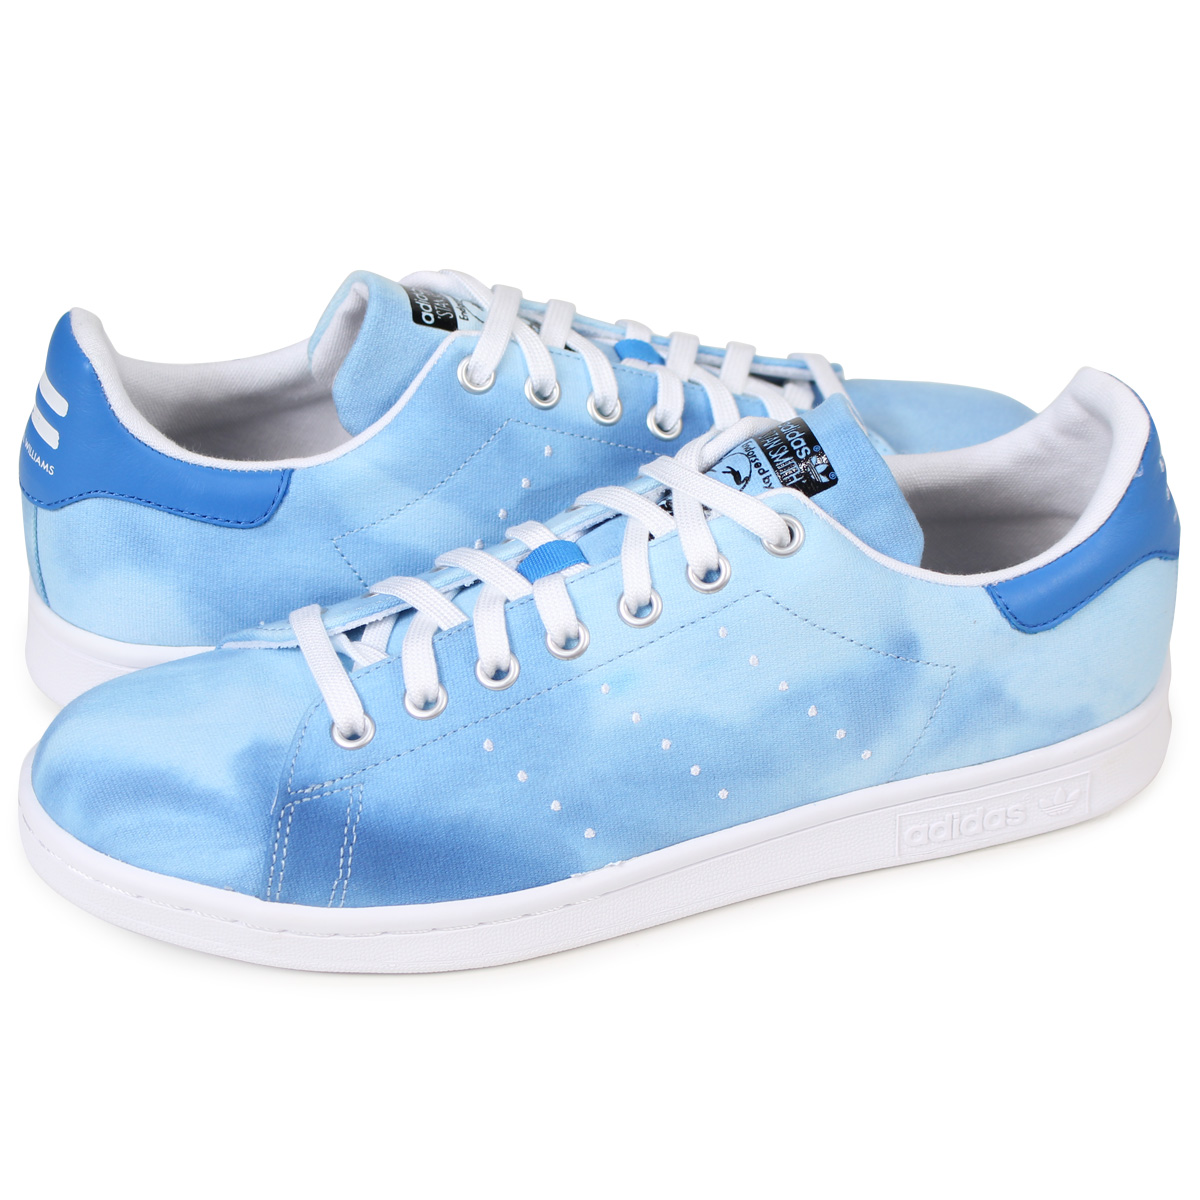 best sneakers 202e8 55958 adidas Originals PW HU HOLI STAN SMITH Adidas Stan Smith sneakers Farrell  Williams men collaboration AC7045 blue originals [load planned Shinnyu load  ...